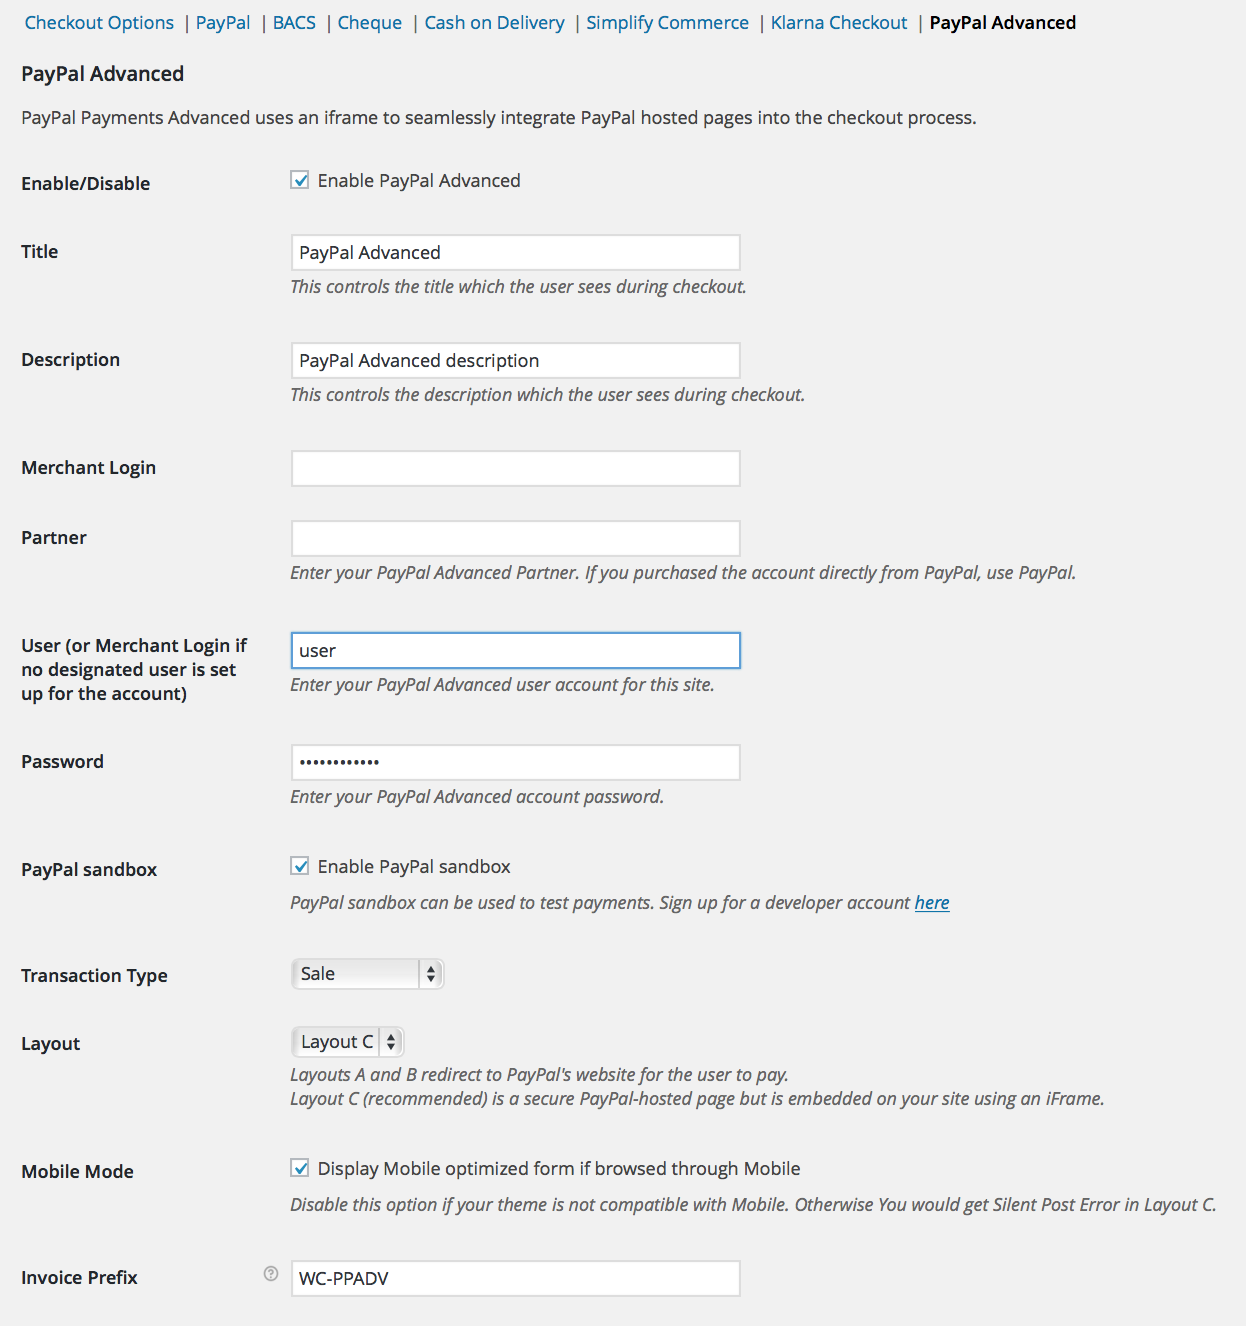 paypal advanced settings